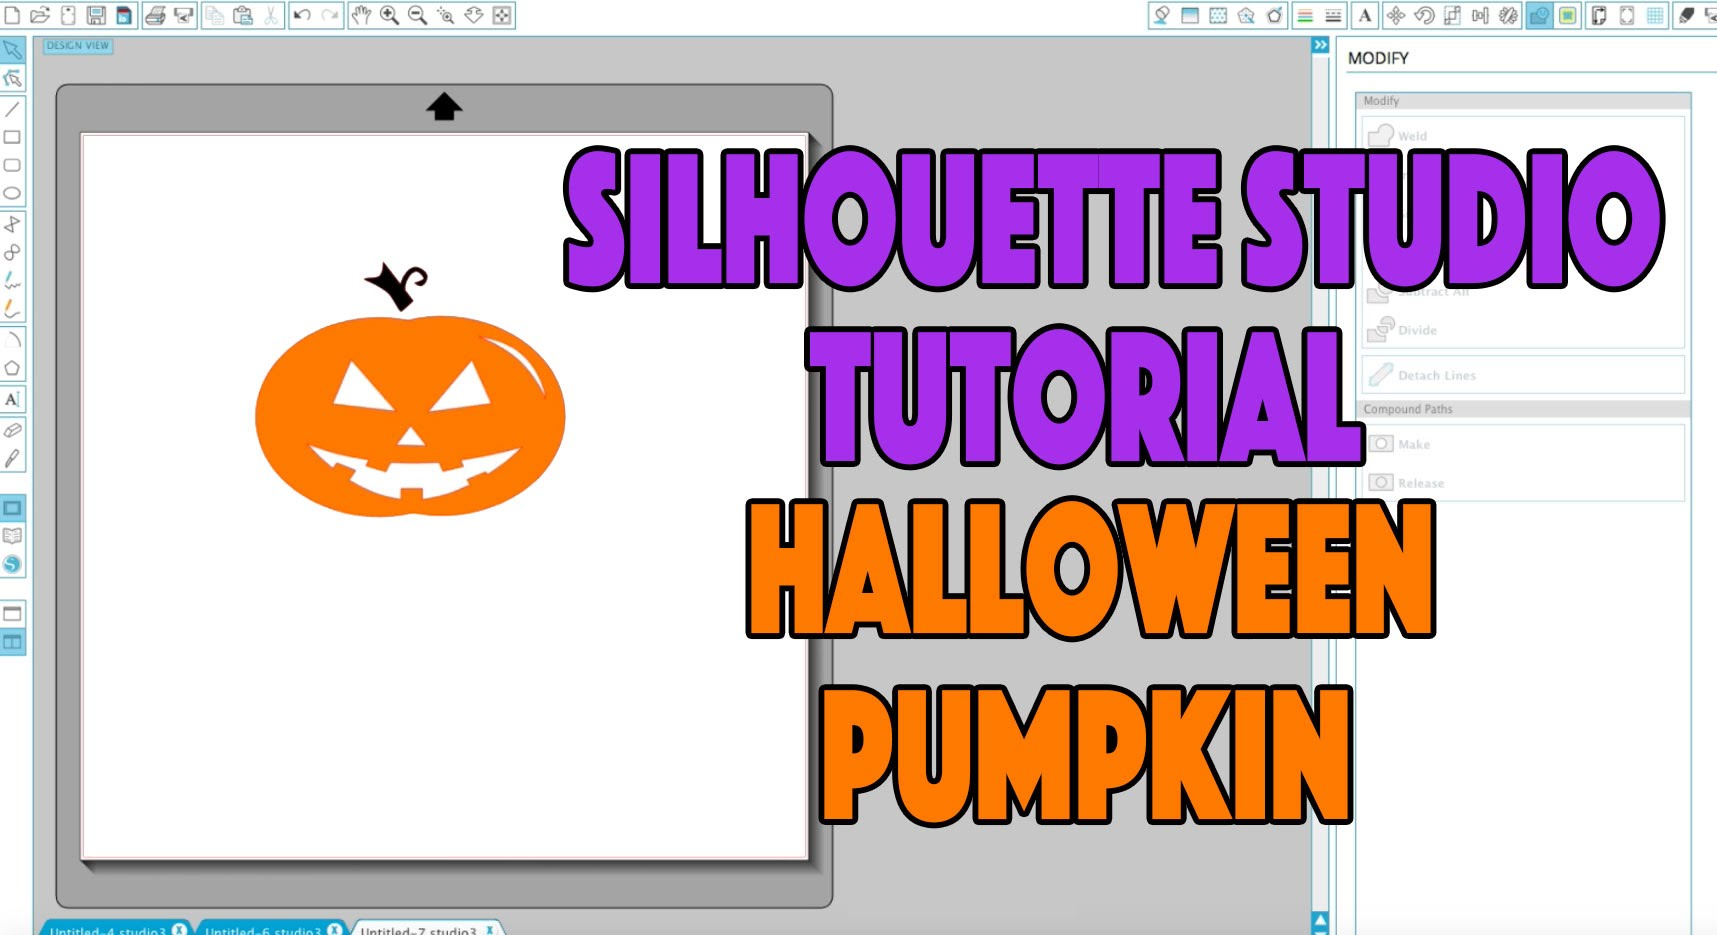 Silhouette Studio Tutorial: Halloween Pumpkin Project